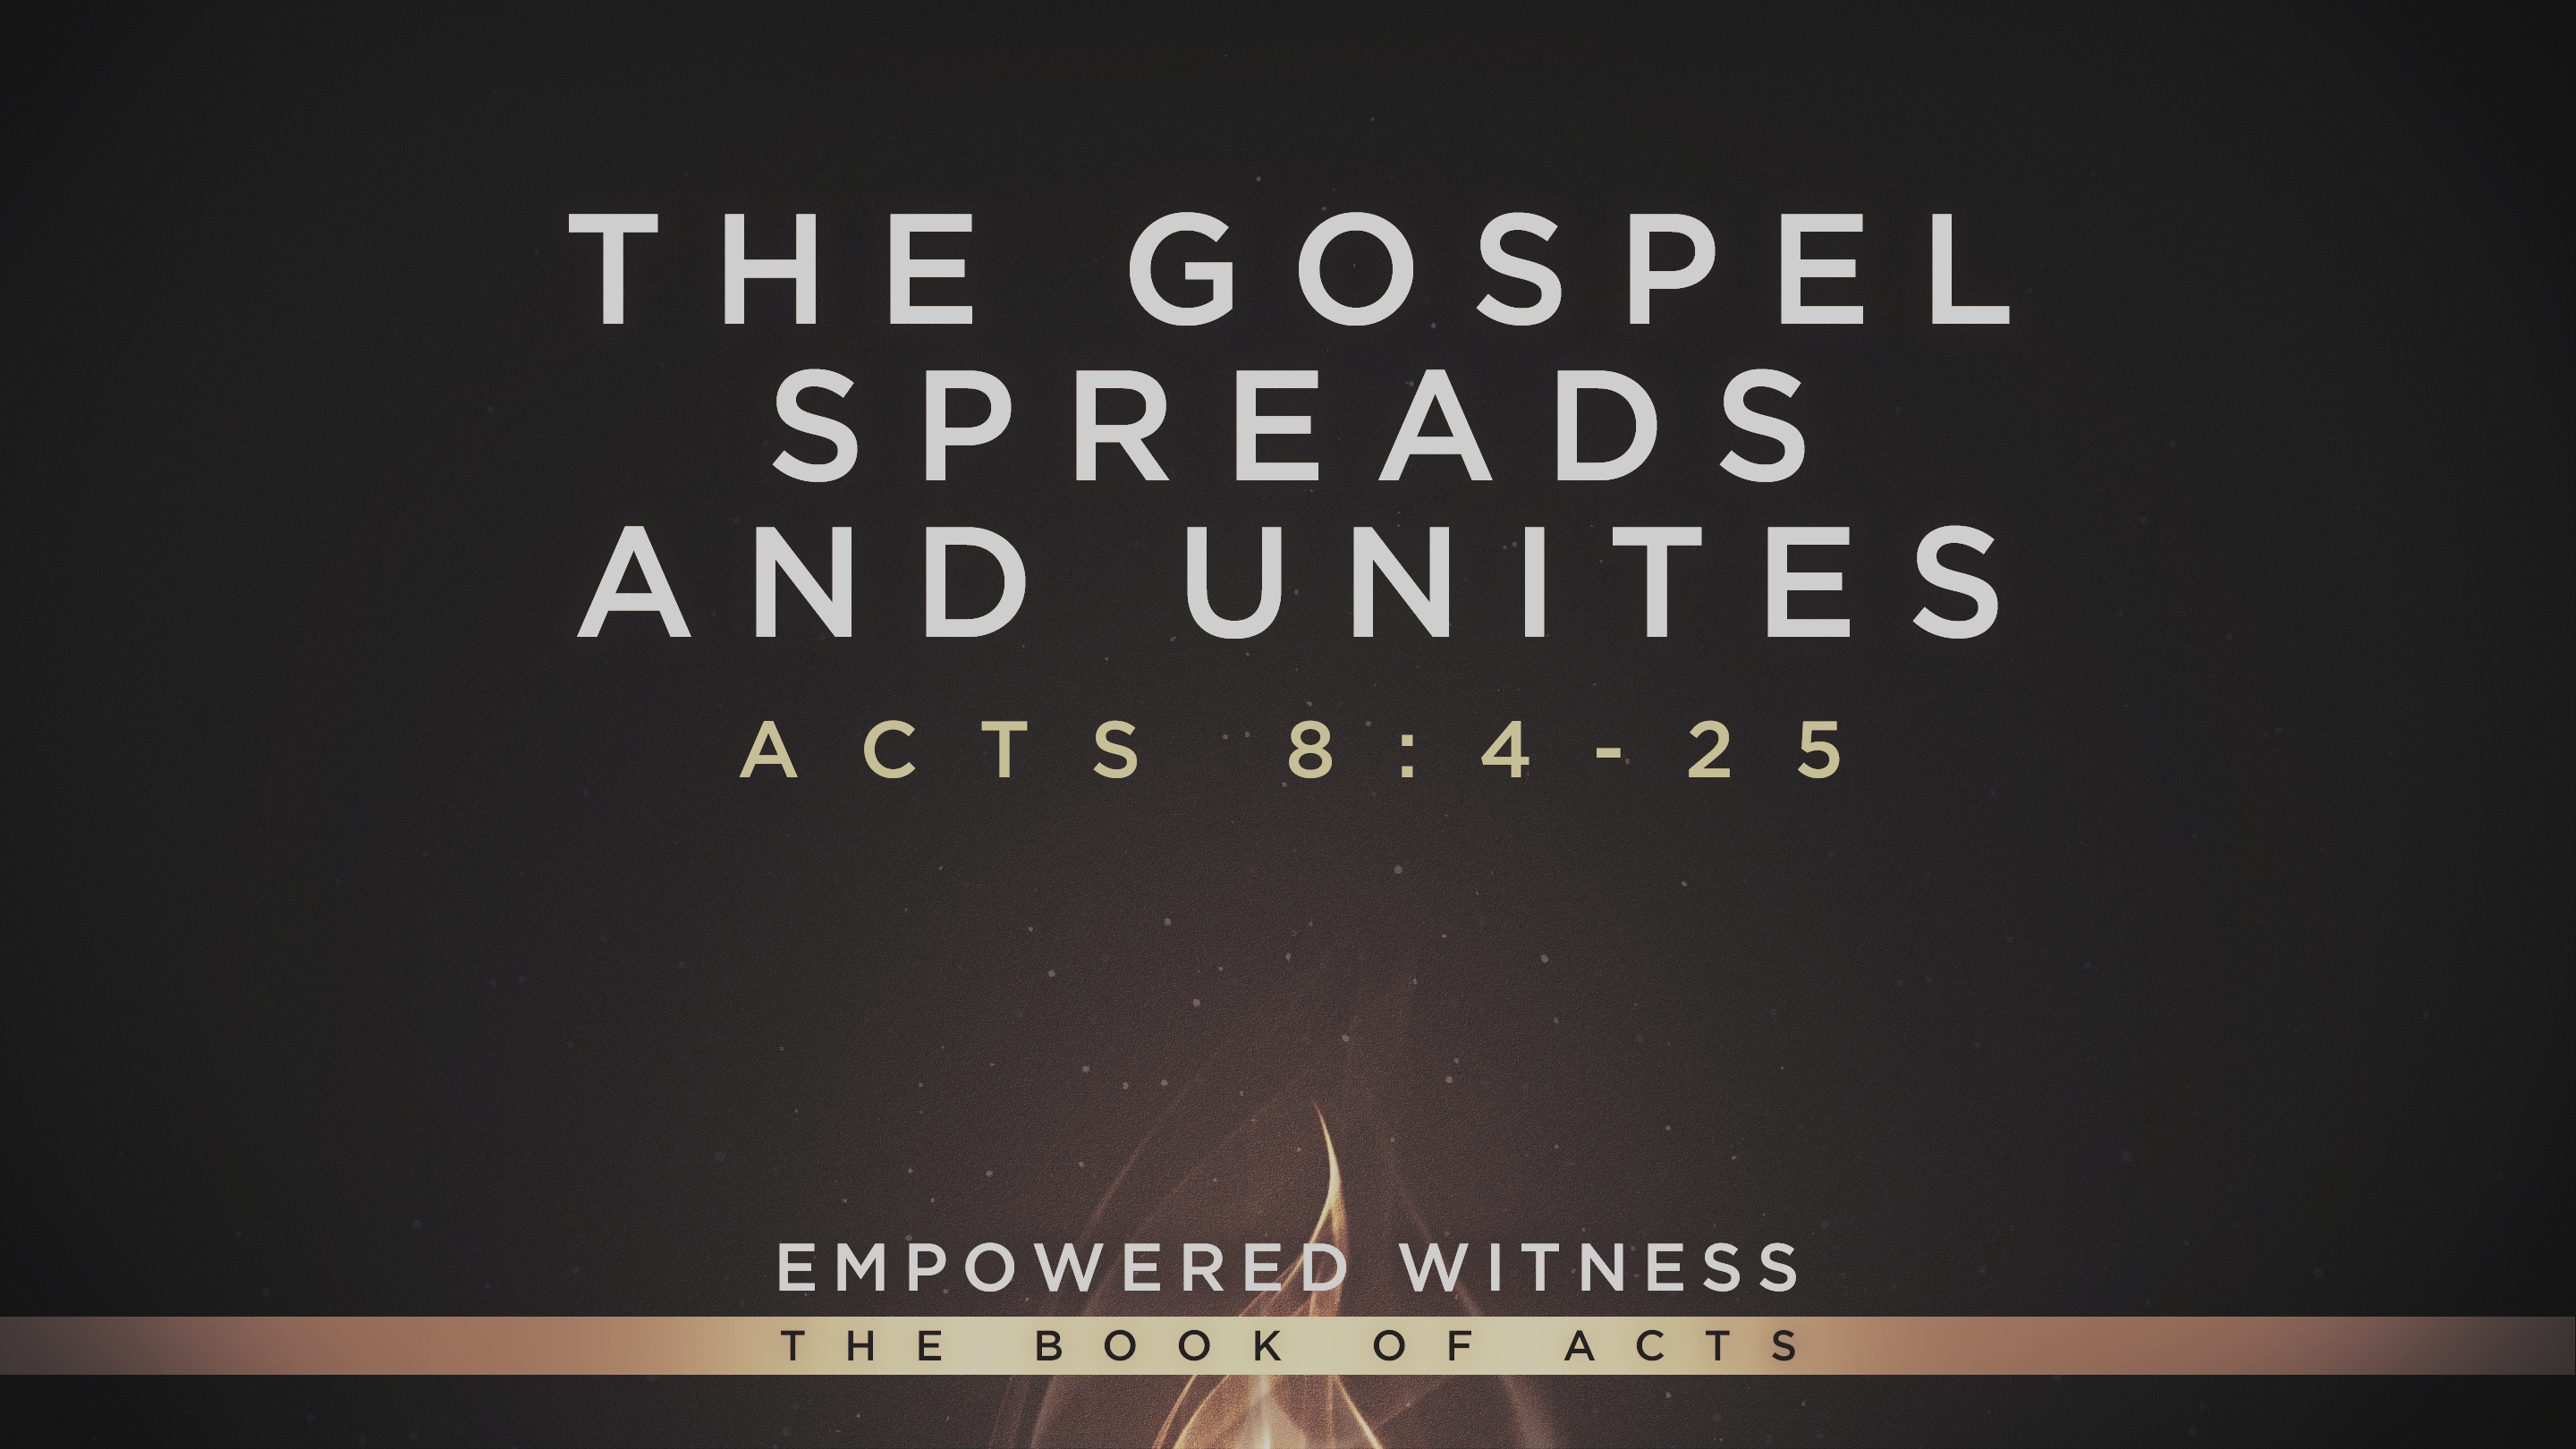 The Gospel Spreads and Unites